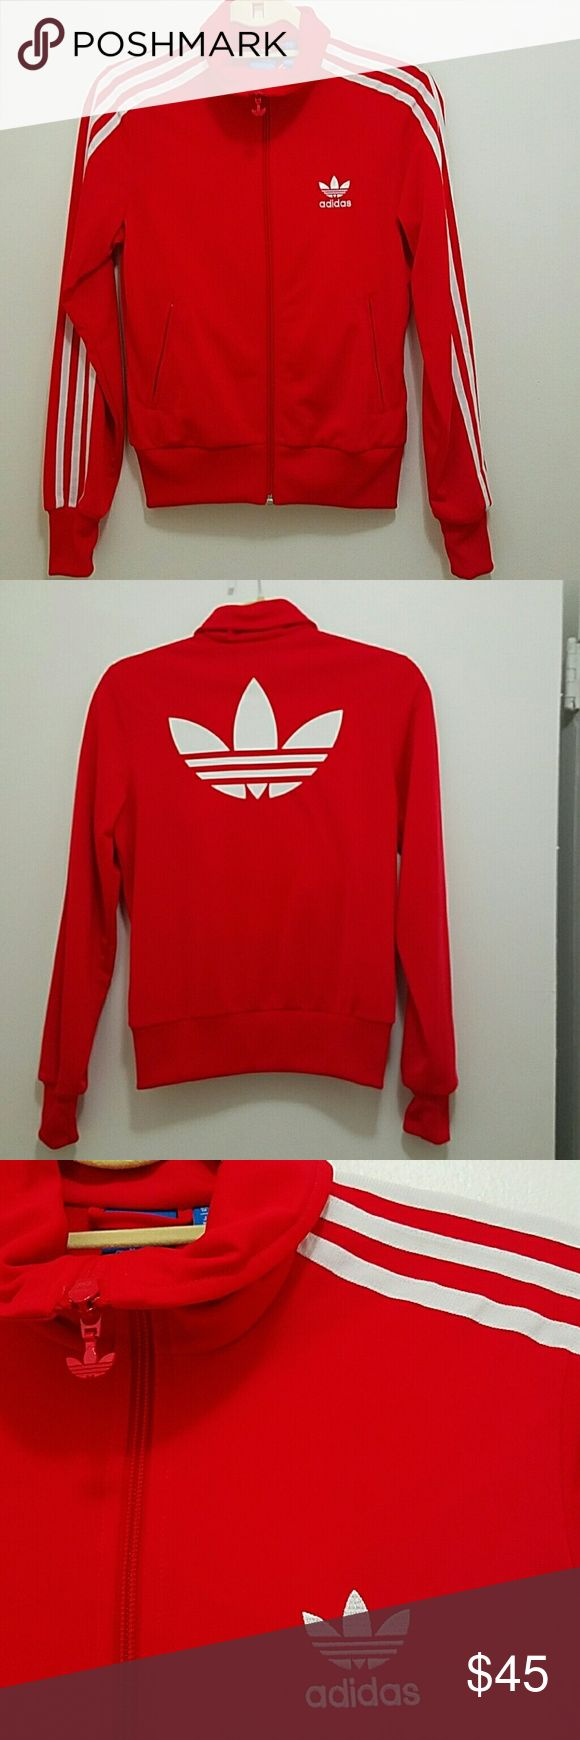 Adidas Track Jacket No Trades!!!! Red and White Adidas Track jacket in Great Condition!!!! Adidas Jackets & Coats